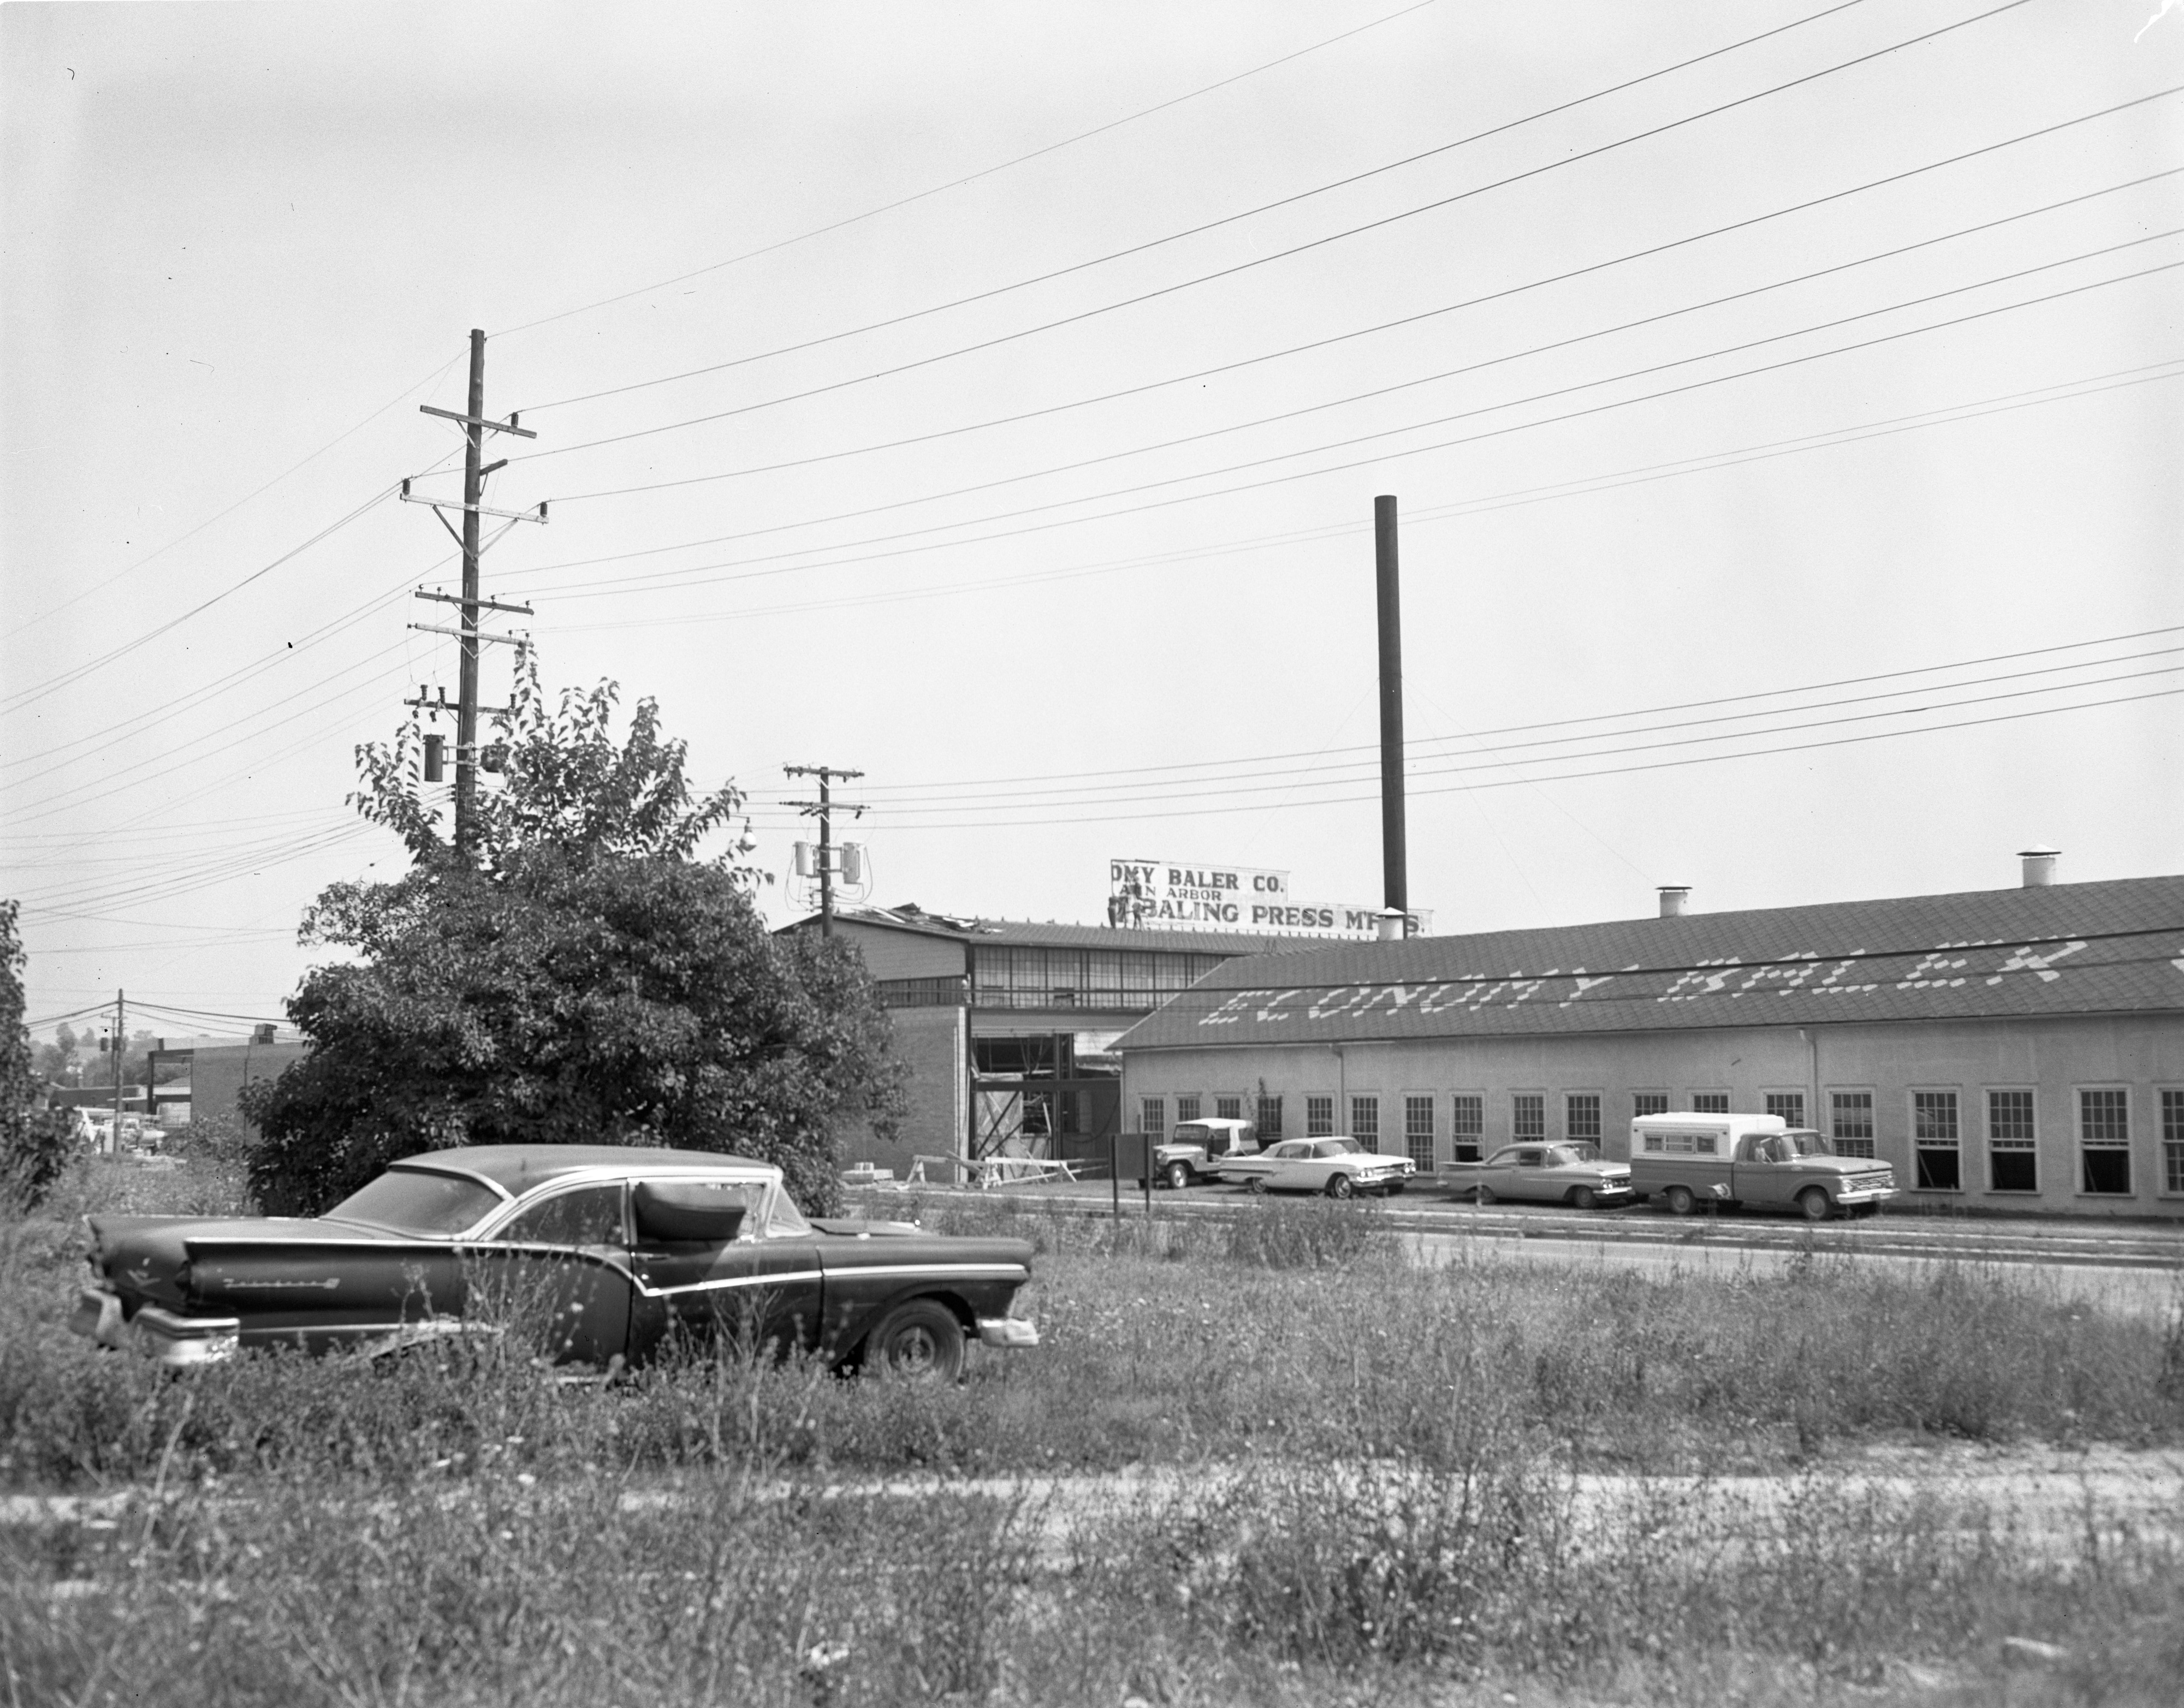 Economy Baler Co. - Exterior, August 1965 image